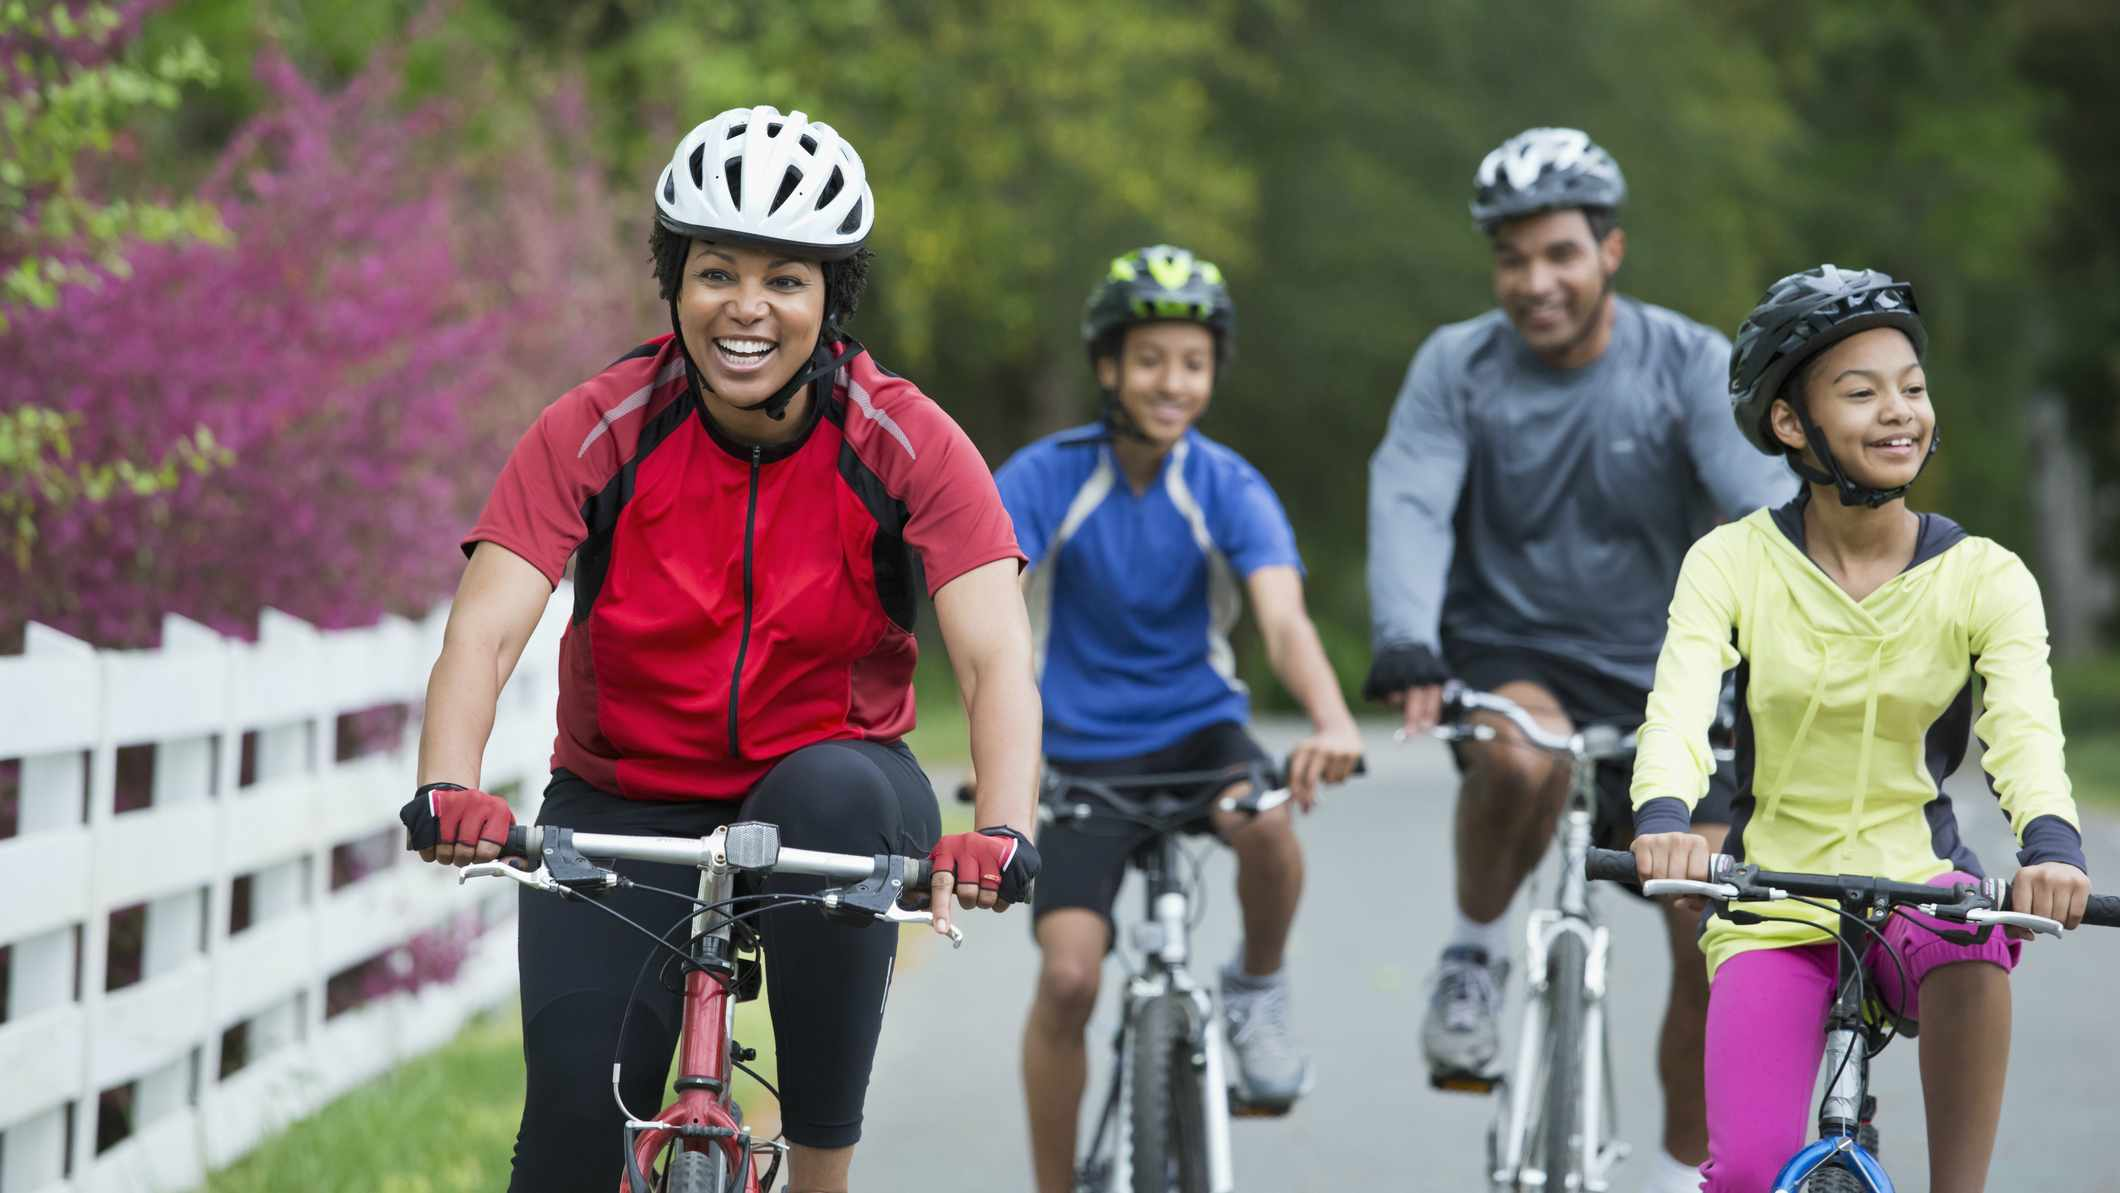 Here are some great cycle rides for families